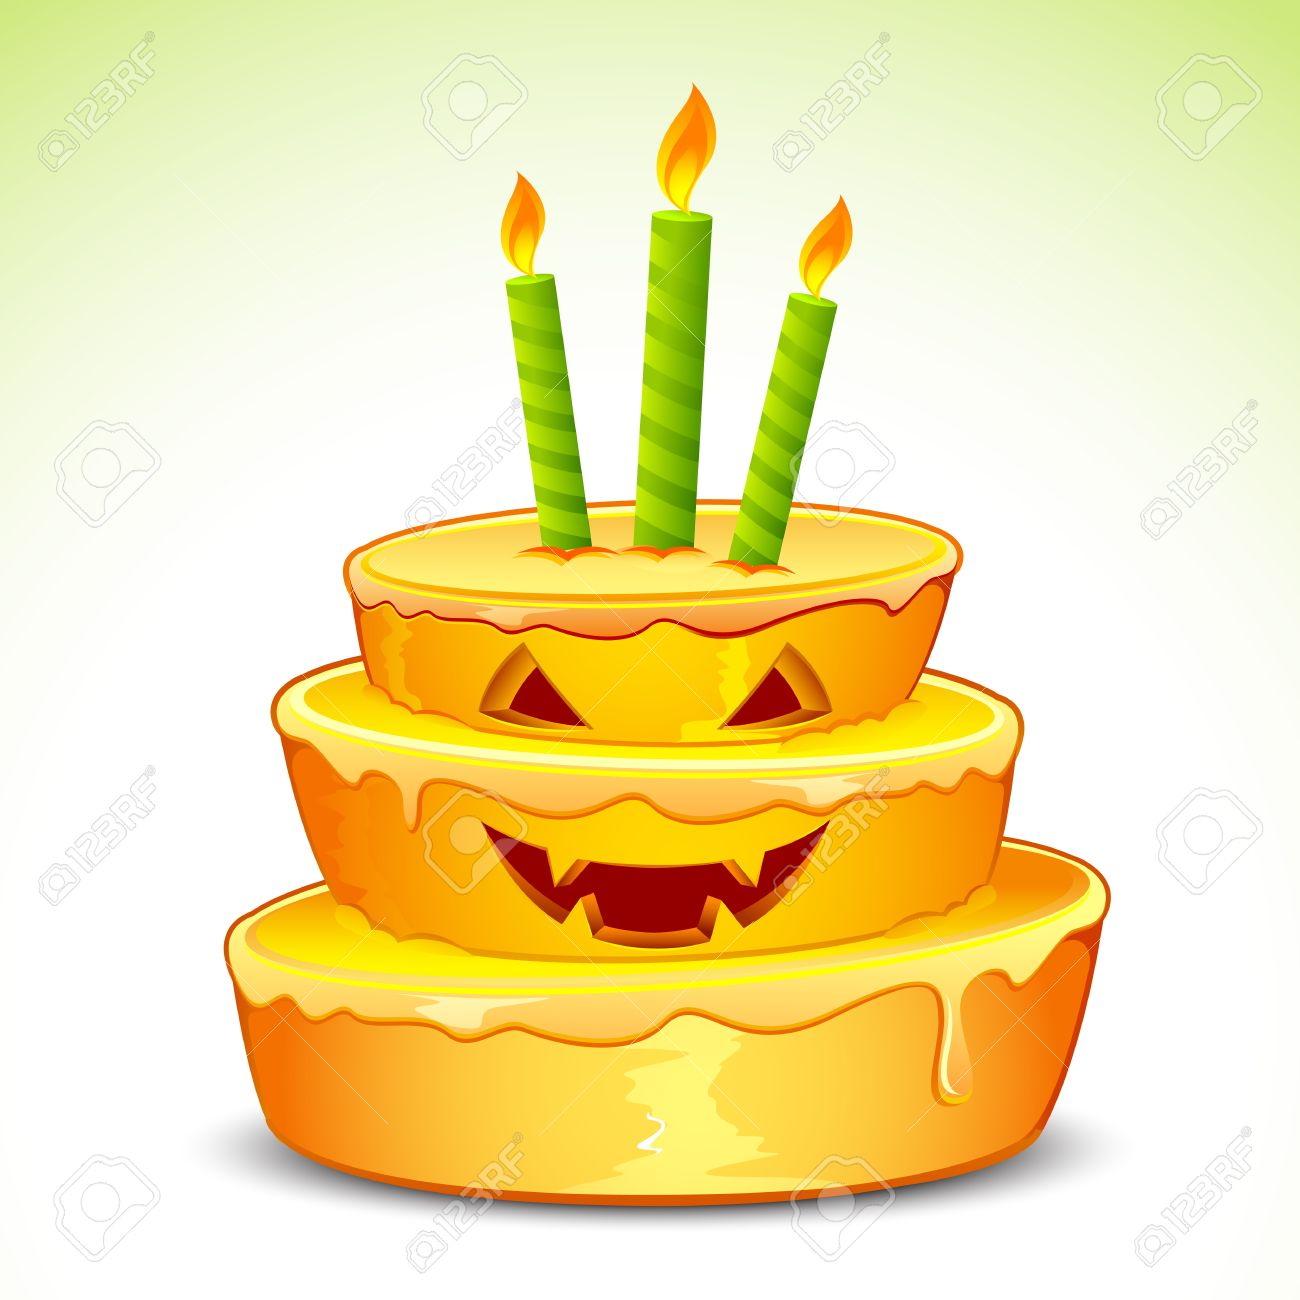 Mead halloween clip art. illustration of-Mead halloween clip art. illustration of pumpkin cake .-5